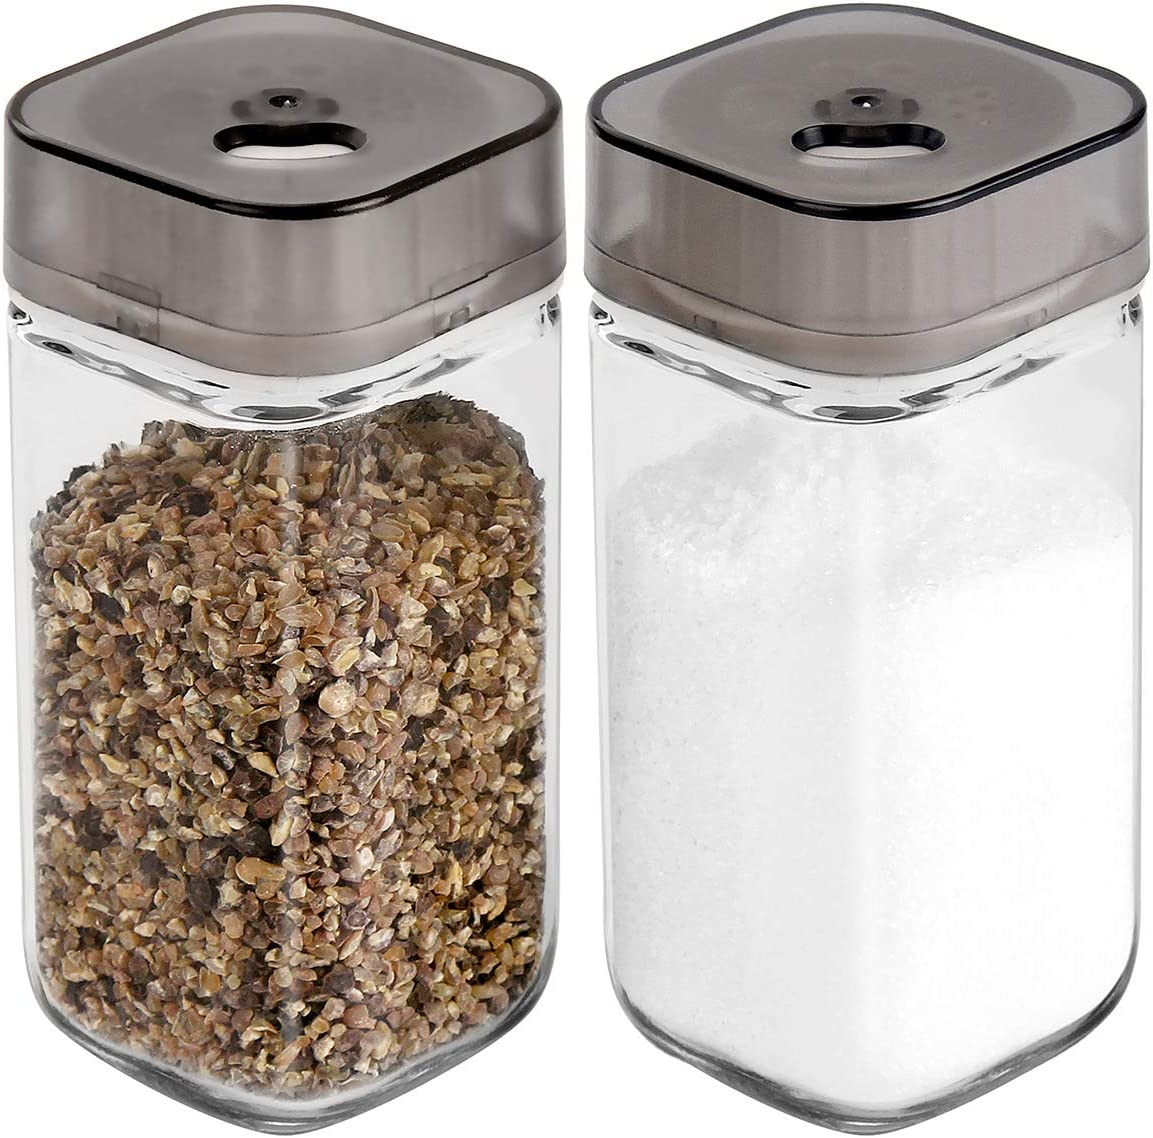 Salt and Pepper Shakers Set with Adjustable Pour Holes - Premium Salt and Pepper Dispenser - Glass